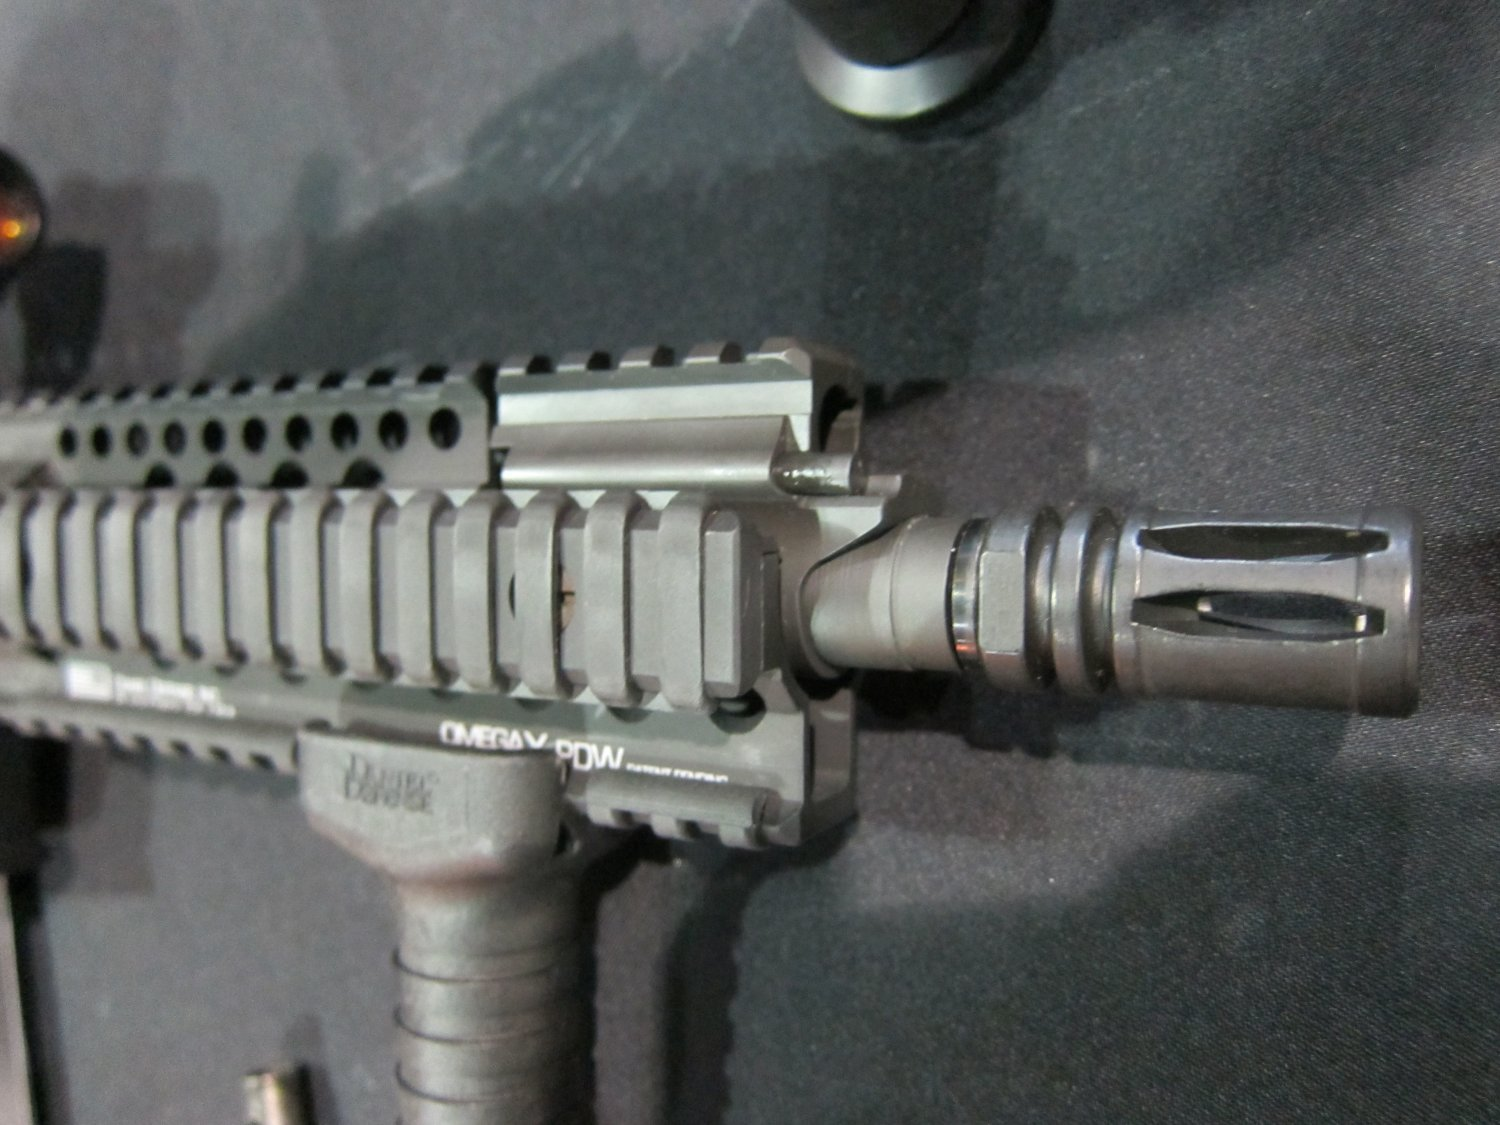 Barrett REC7 5.56mm AR SBR 14 Barrett REC7 5.56 8 Piston AR PDW Displayed at SOFIC 2010 (Photos!): 5.56mm NATO Piston Driven Tactical AR Carbine/SBR for Military Special Operations Forces (SOF)